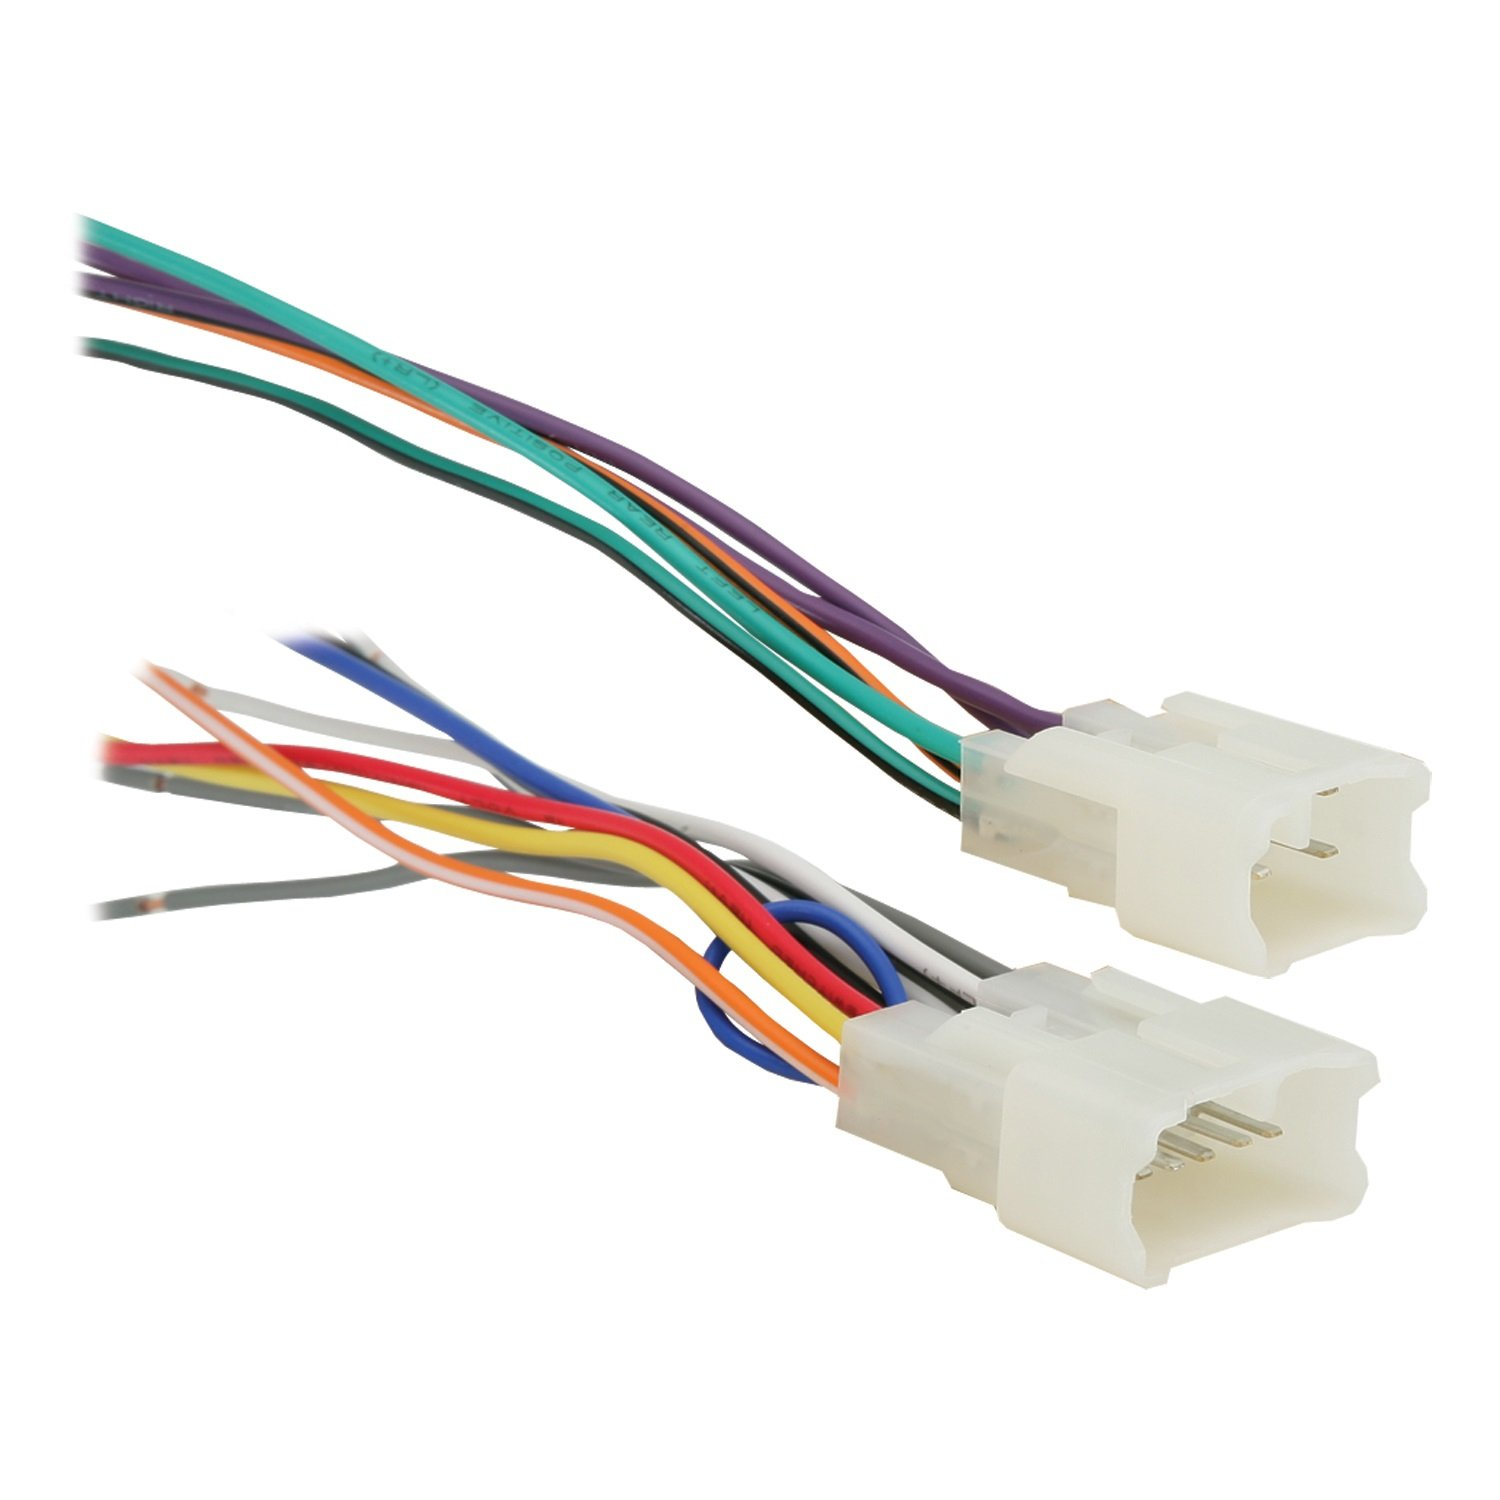 61ifTKeRTLL._SL1500_ amazon com wiring harnesses electrical automotive Wiring Harness Diagram at alyssarenee.co